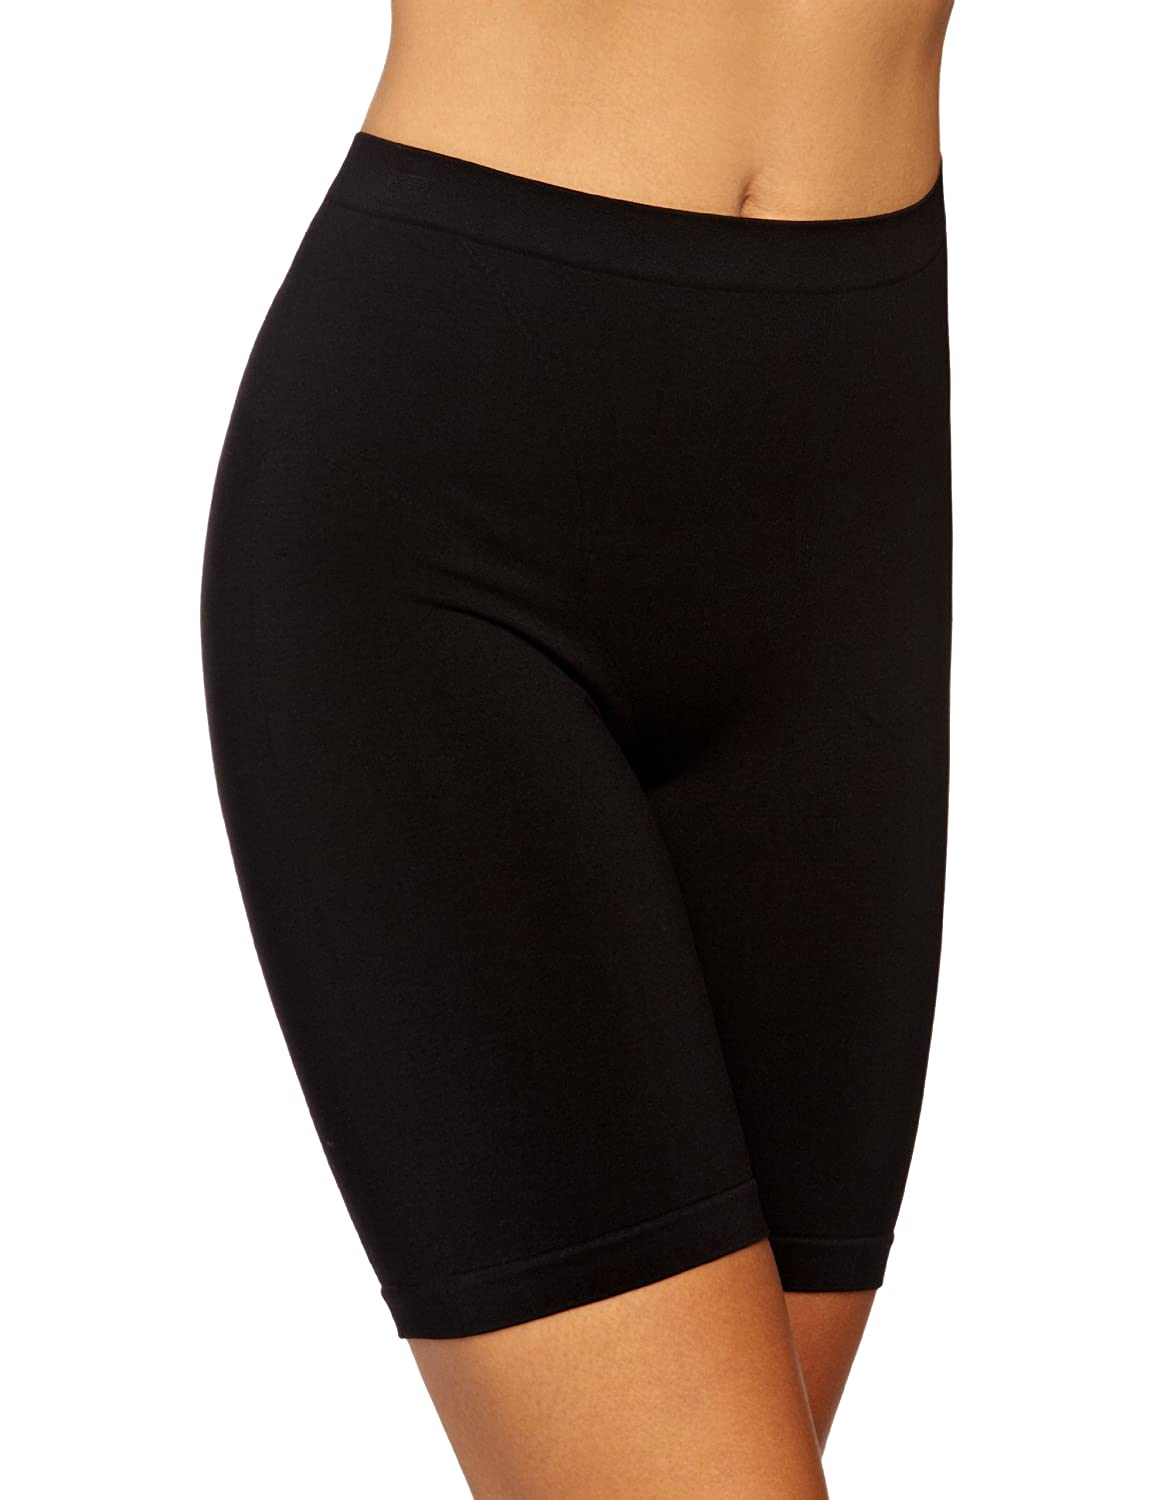 AMBRA Killer Figure Smoothline Shorts High Rise Women's Shorts